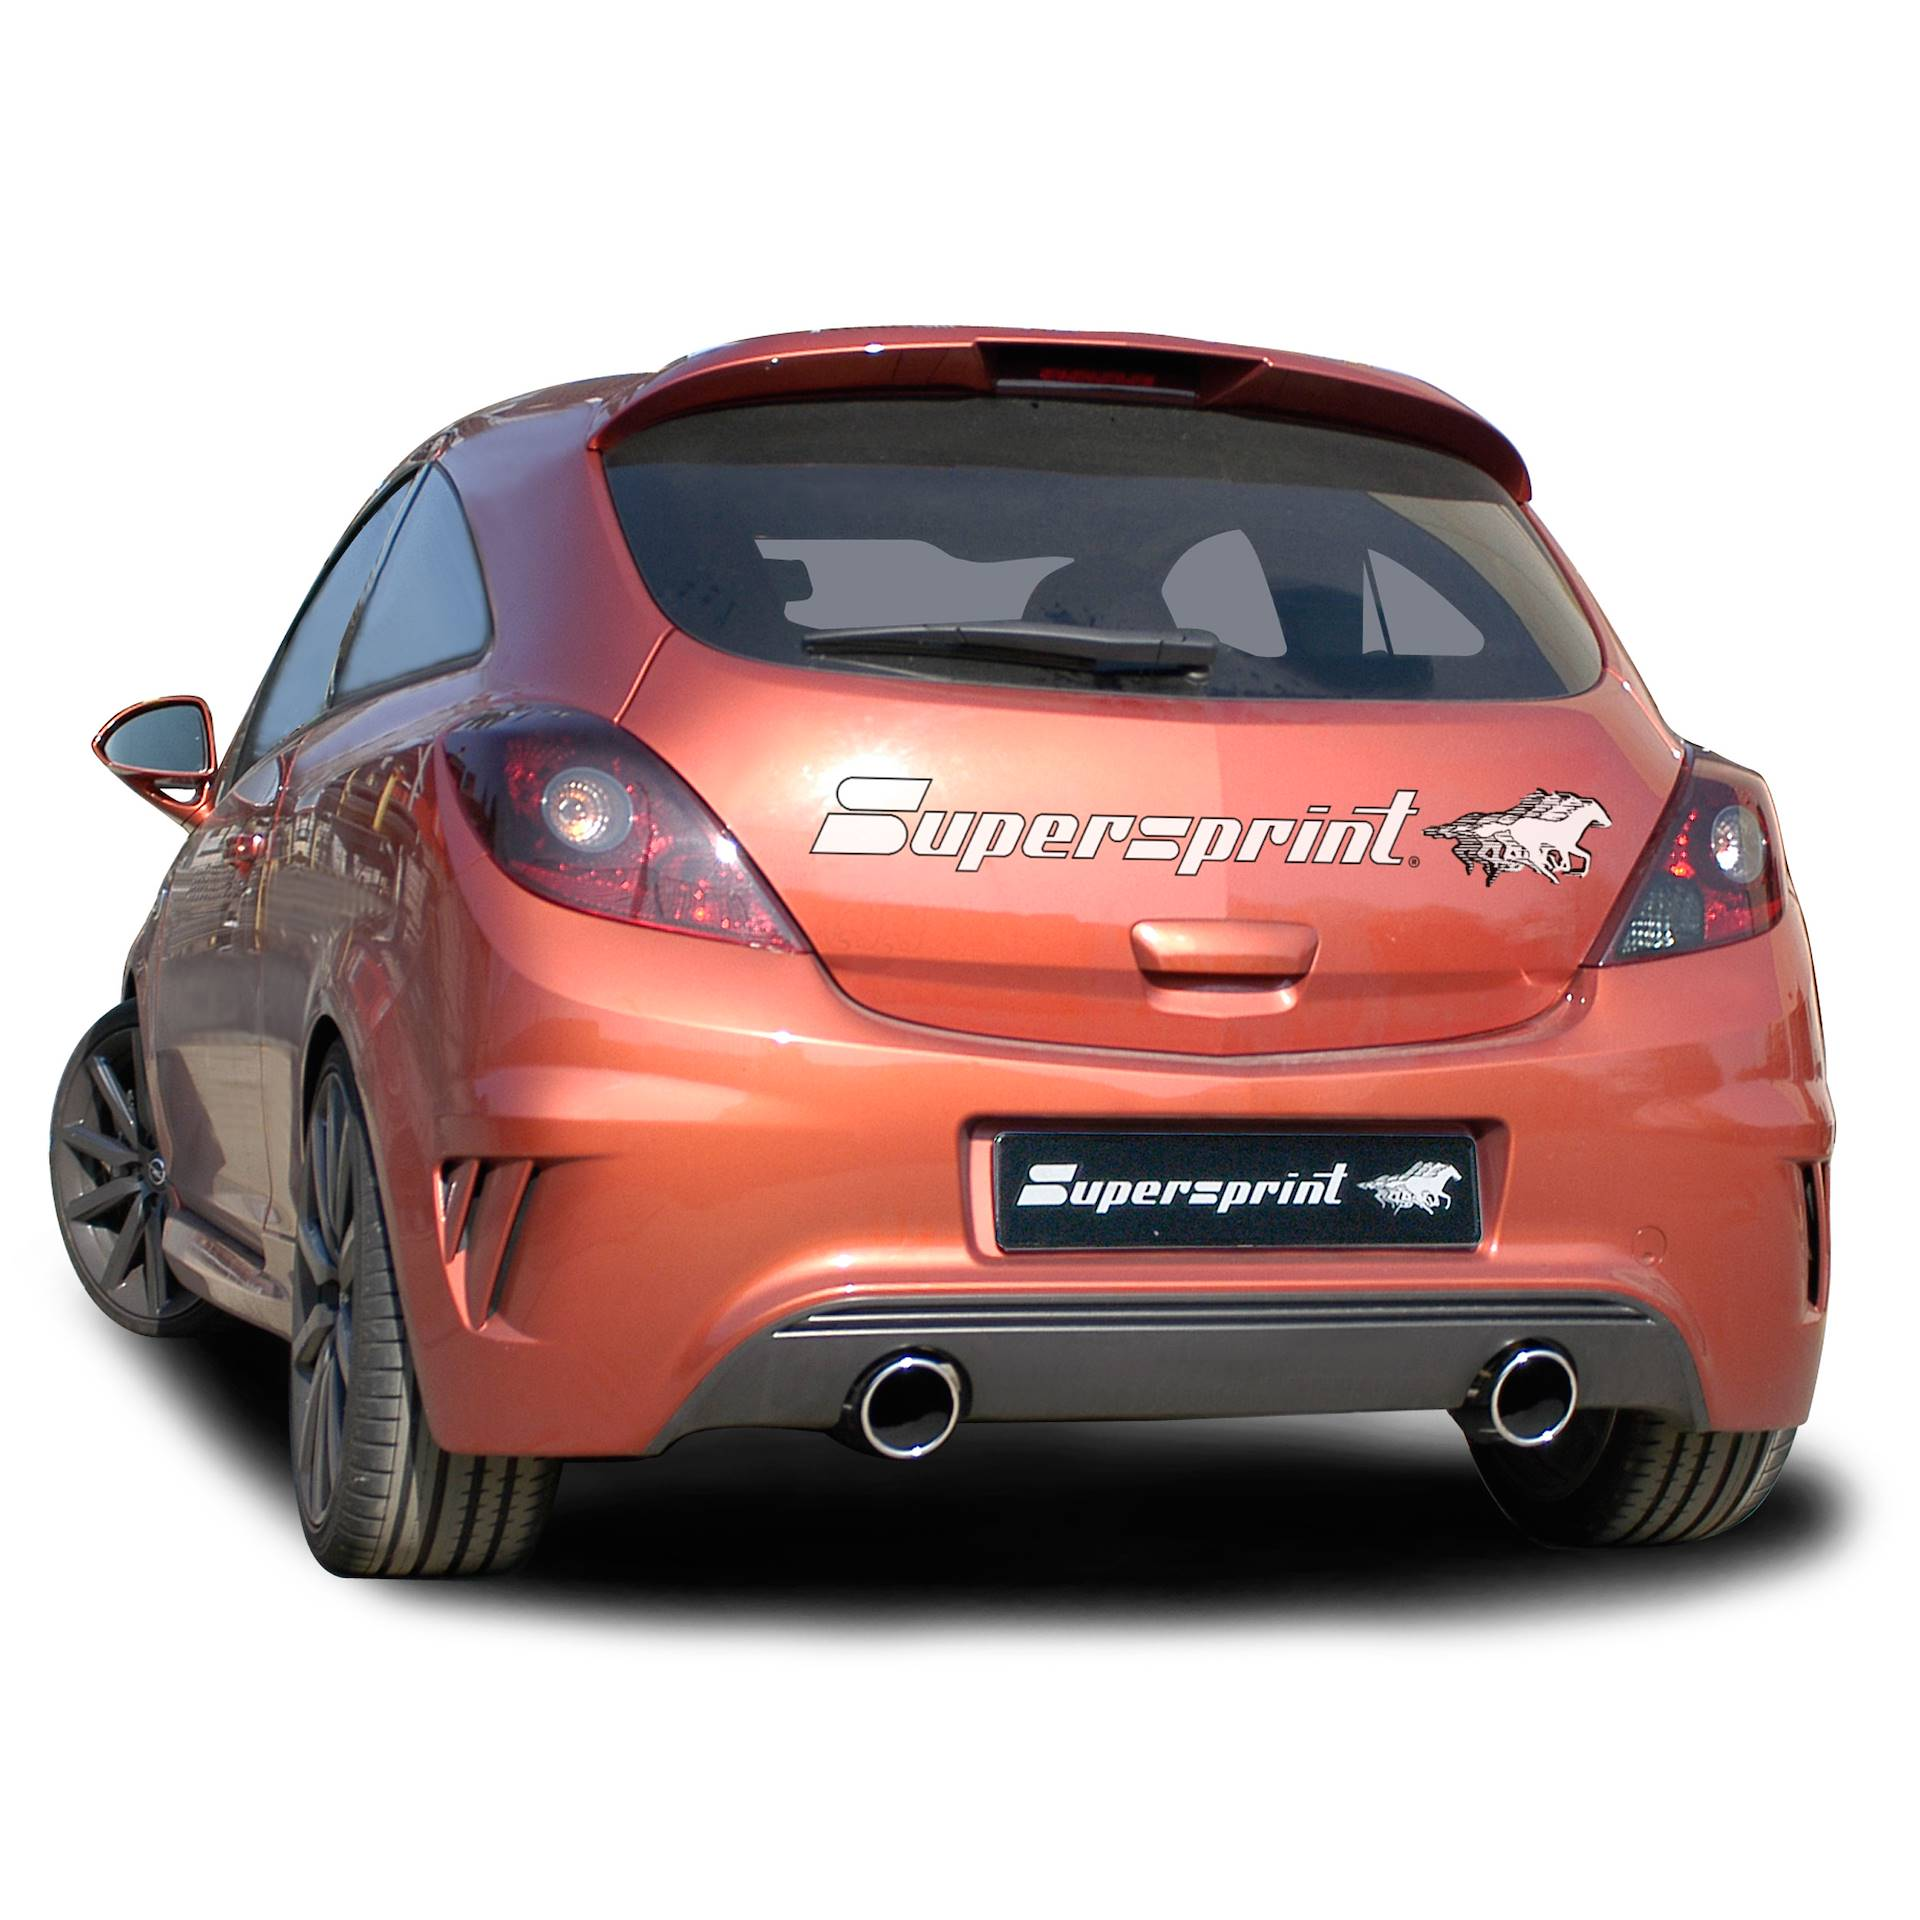 performance sport exhaust for corsa nurburgring opel. Black Bedroom Furniture Sets. Home Design Ideas